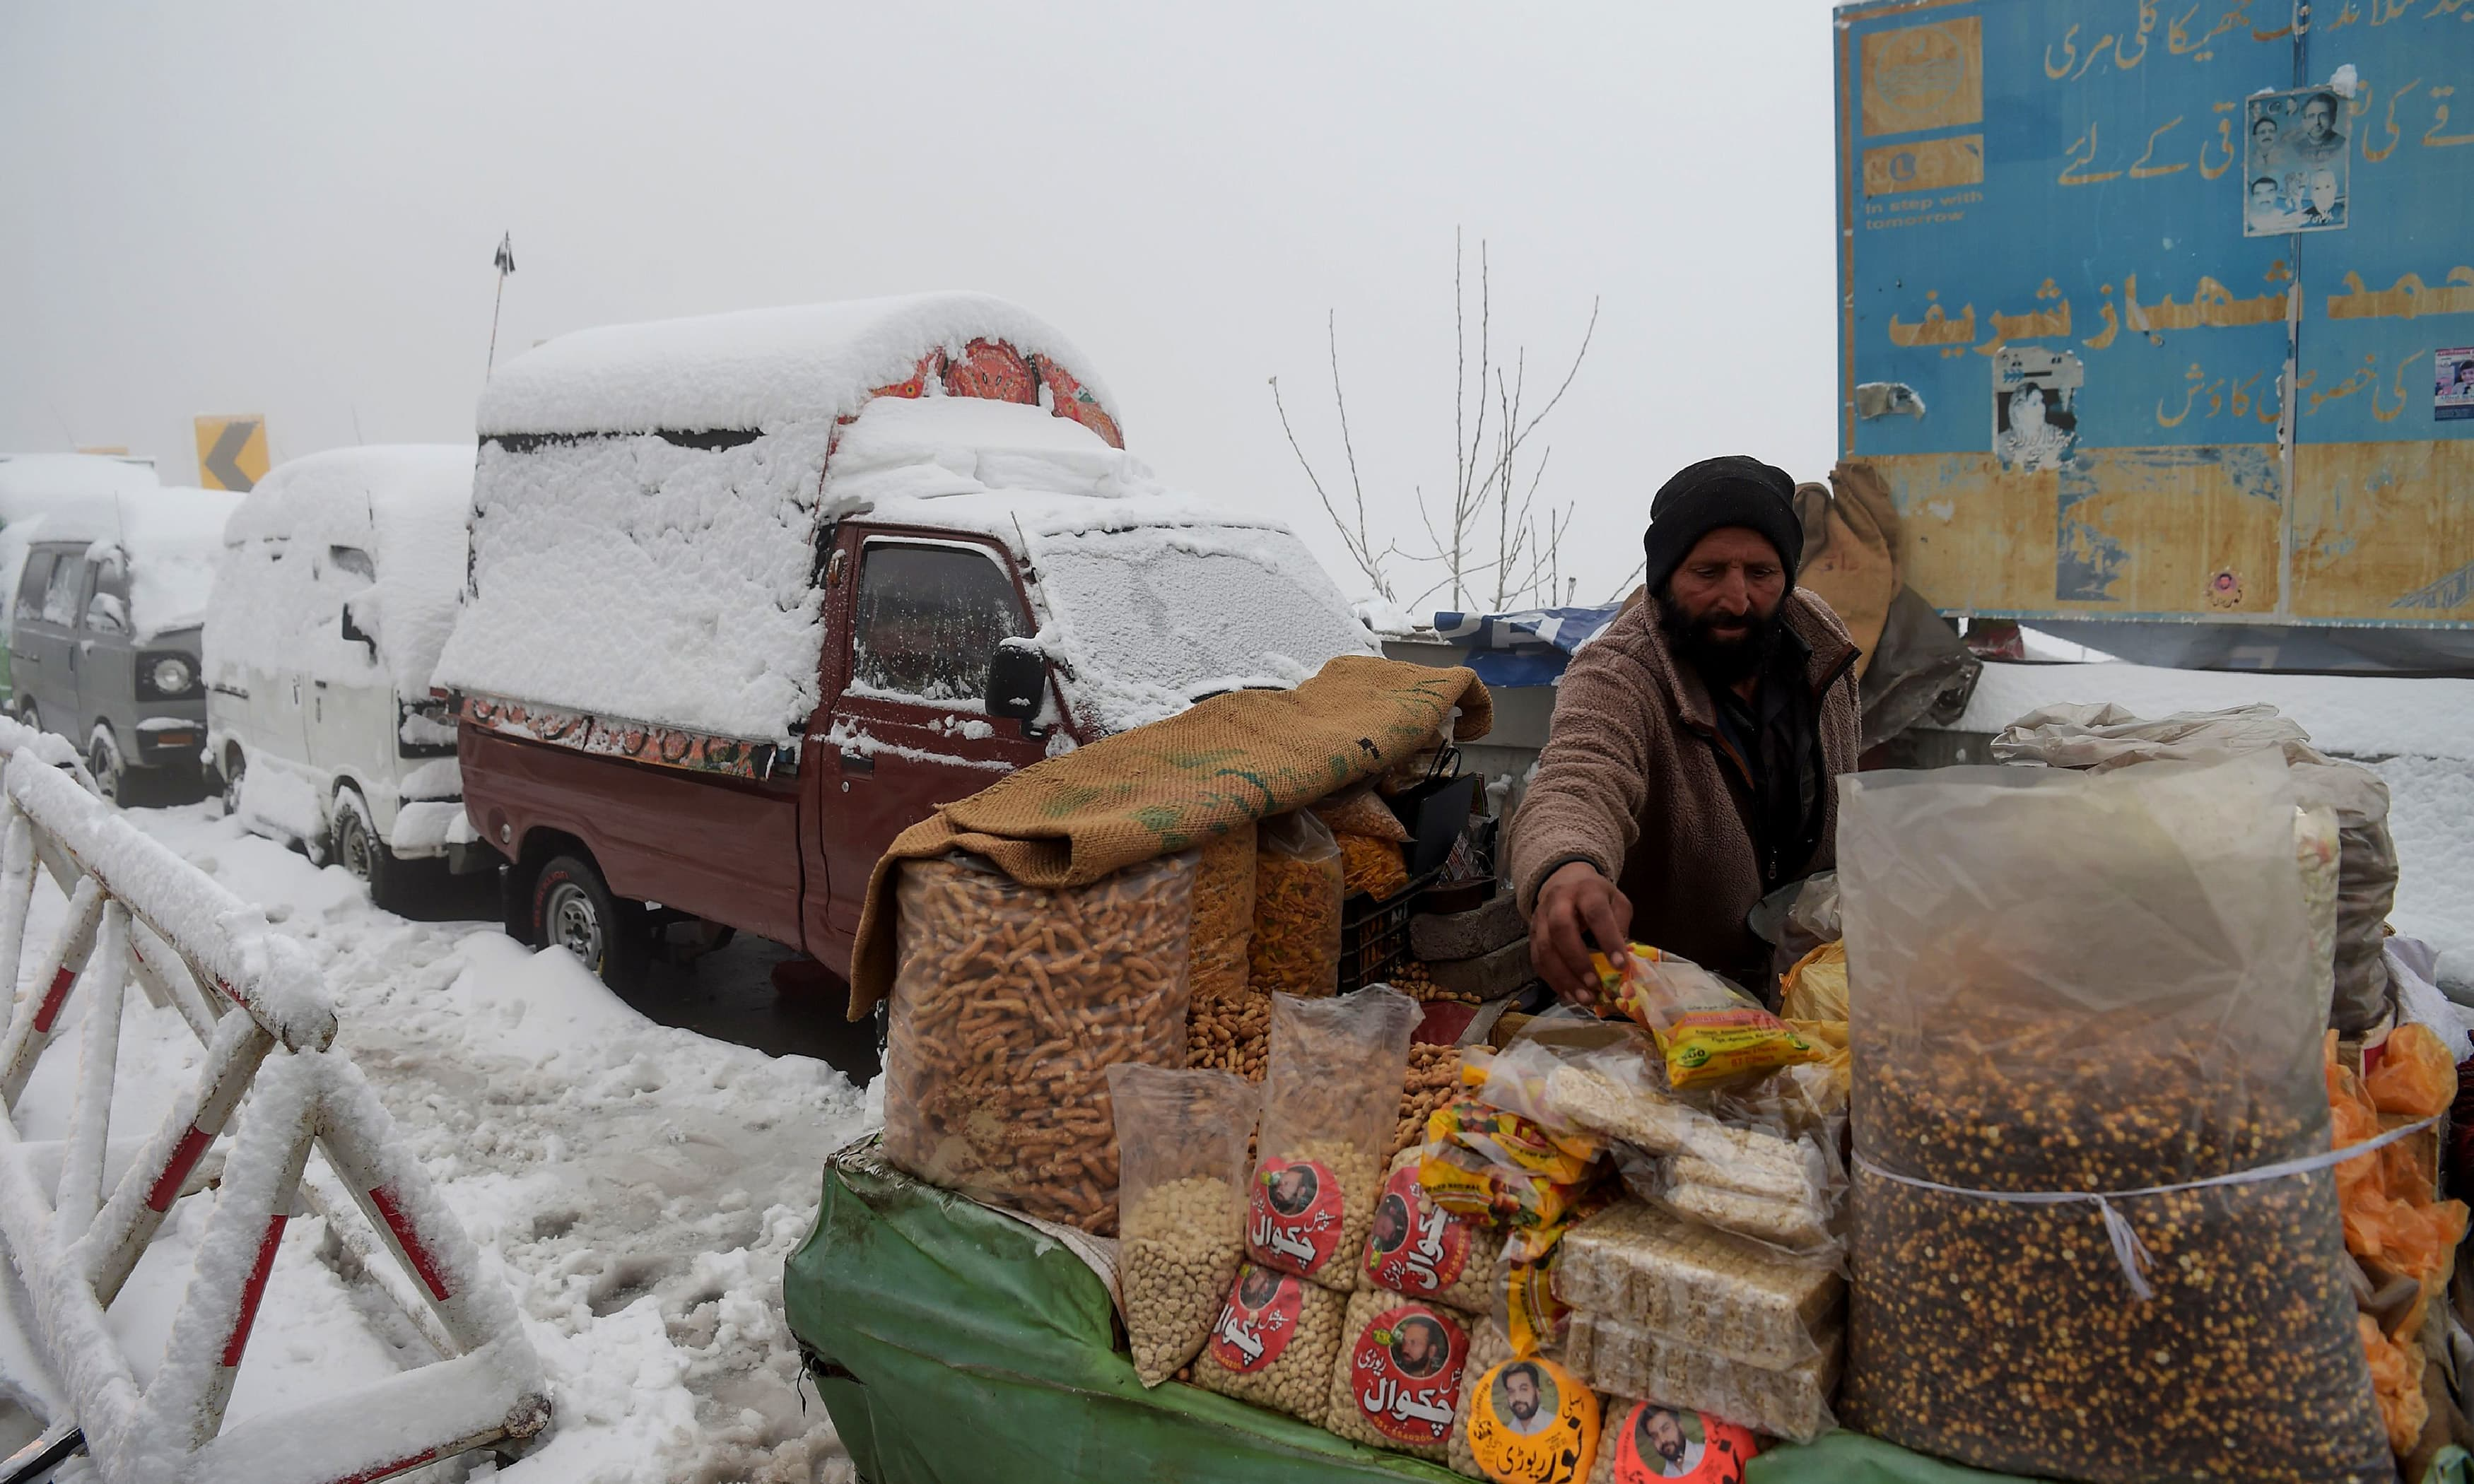 A vendor arranges his stall near vehicles covered with snow during snowfall in Murree. —AFP